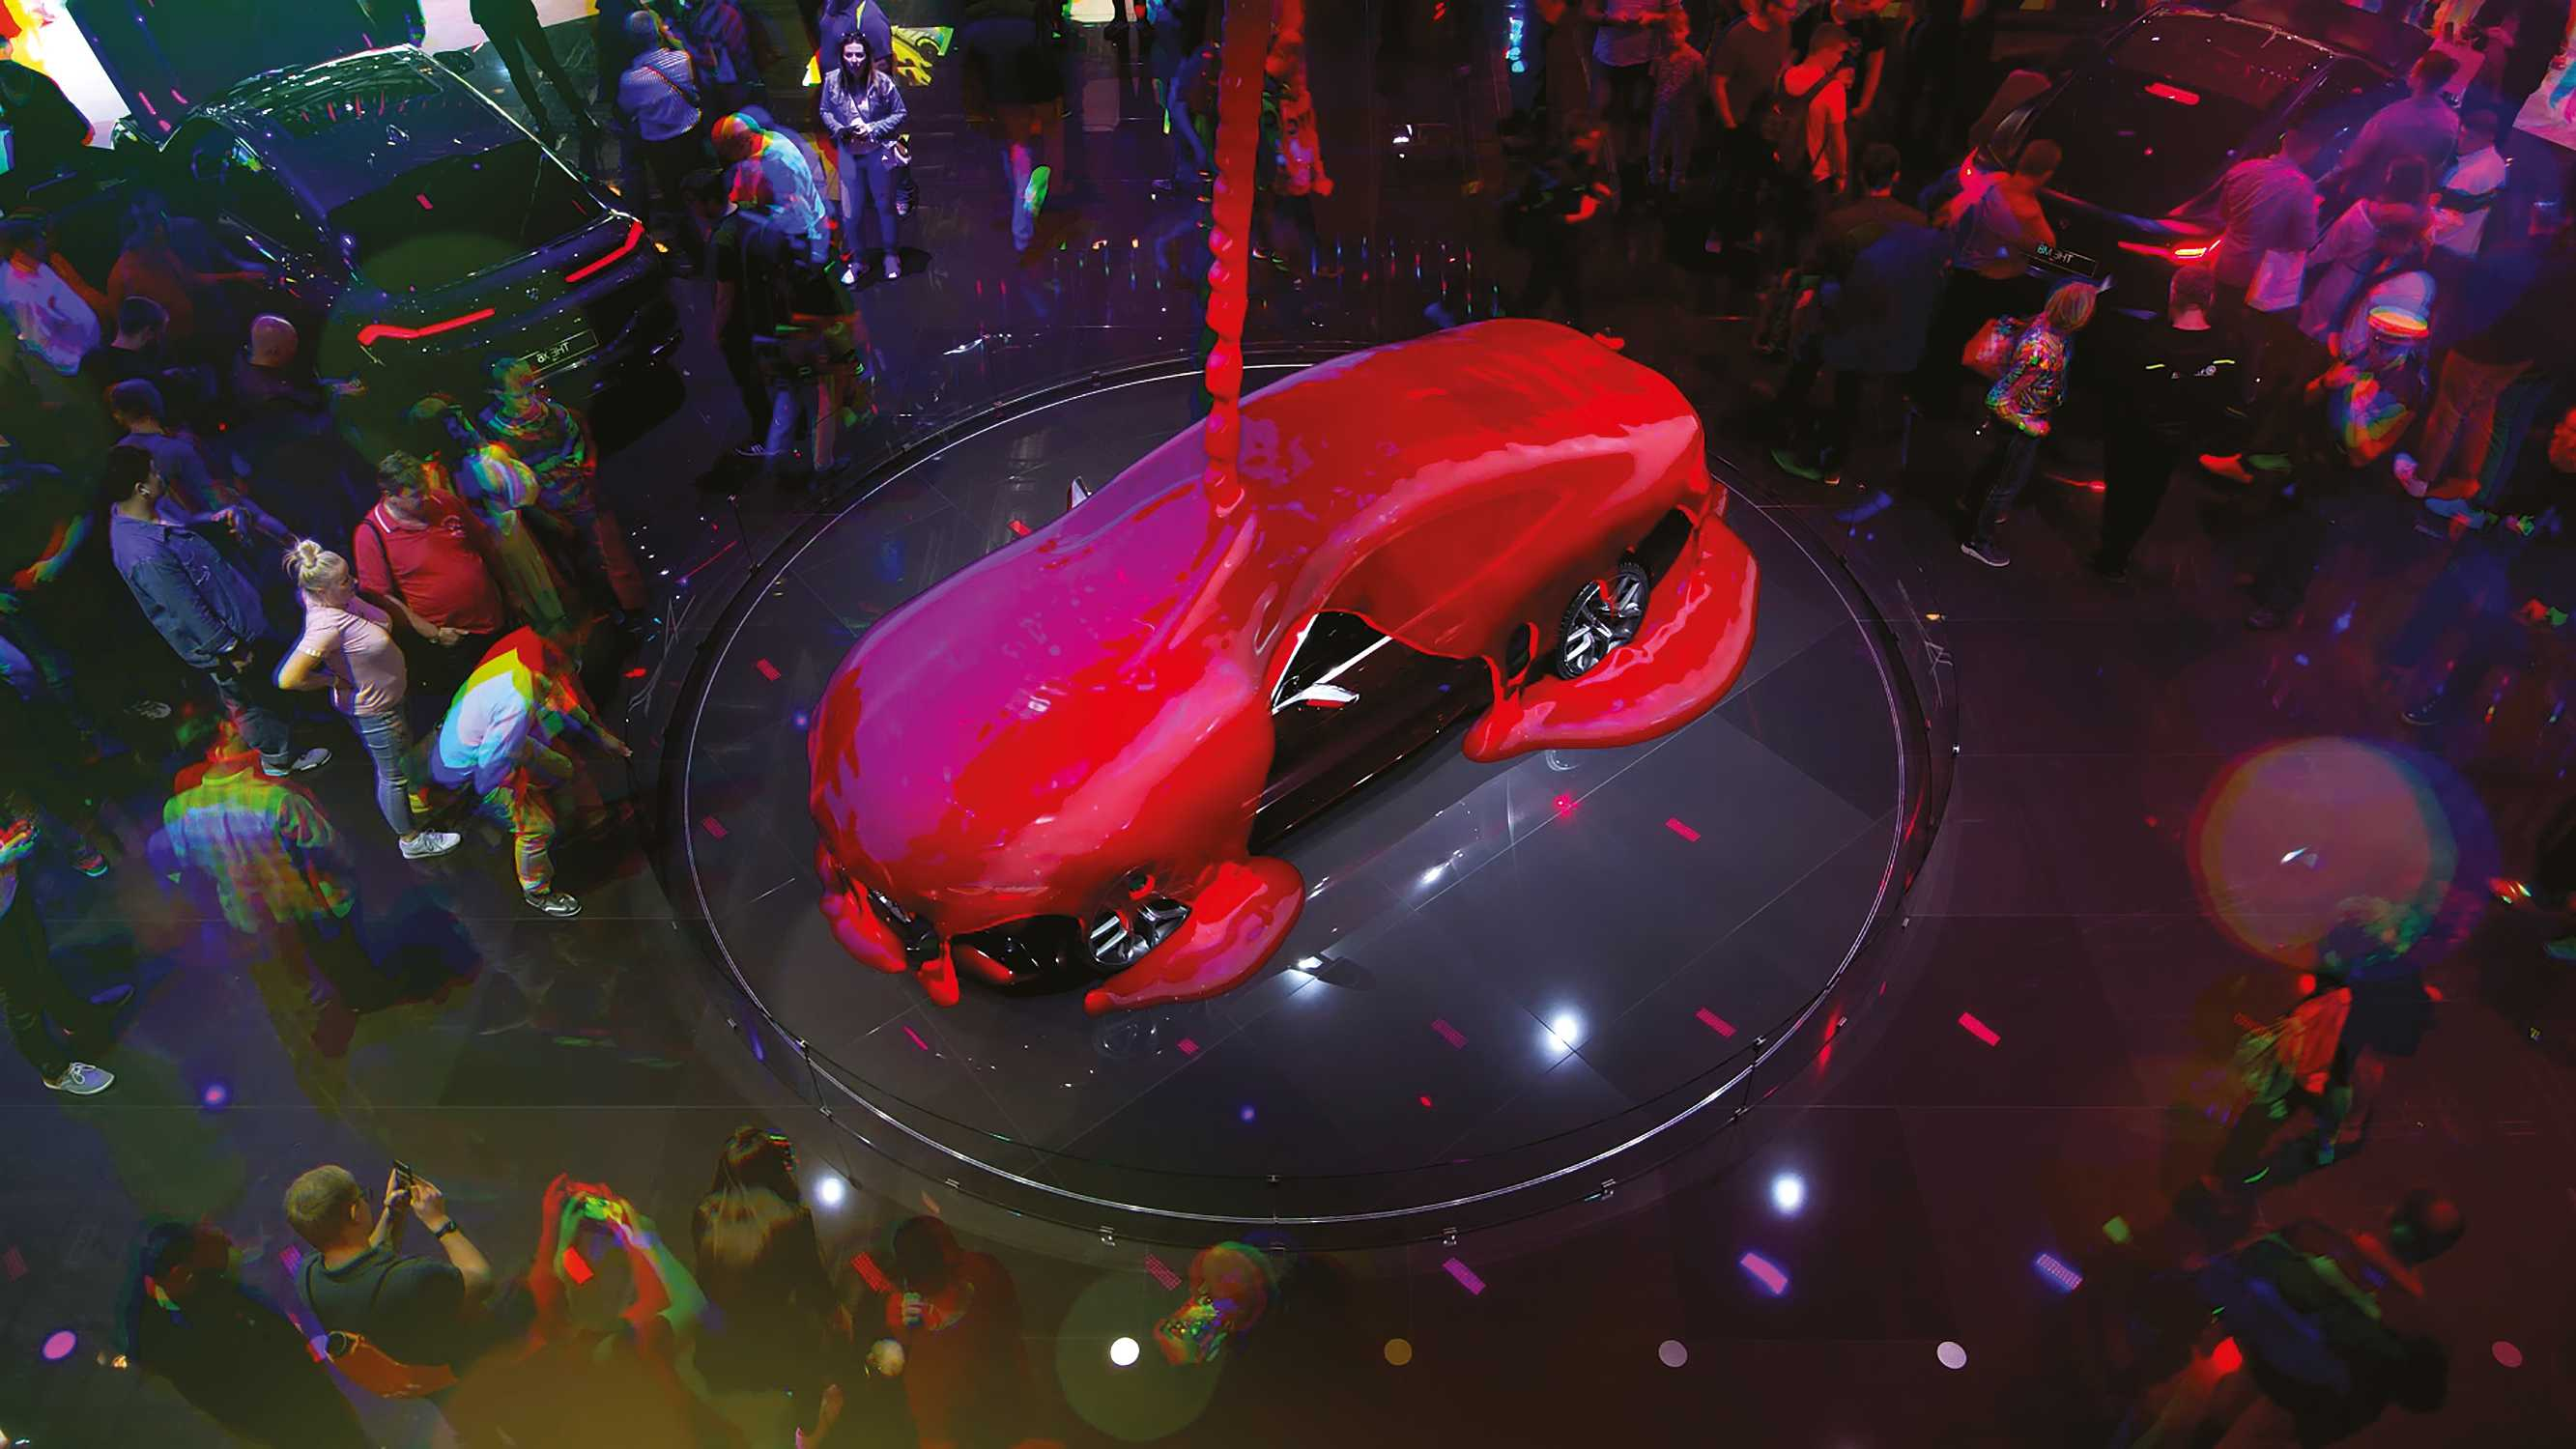 BMW Group at the IAA 2019 - state-of-the-art booth staging. (08/2020)